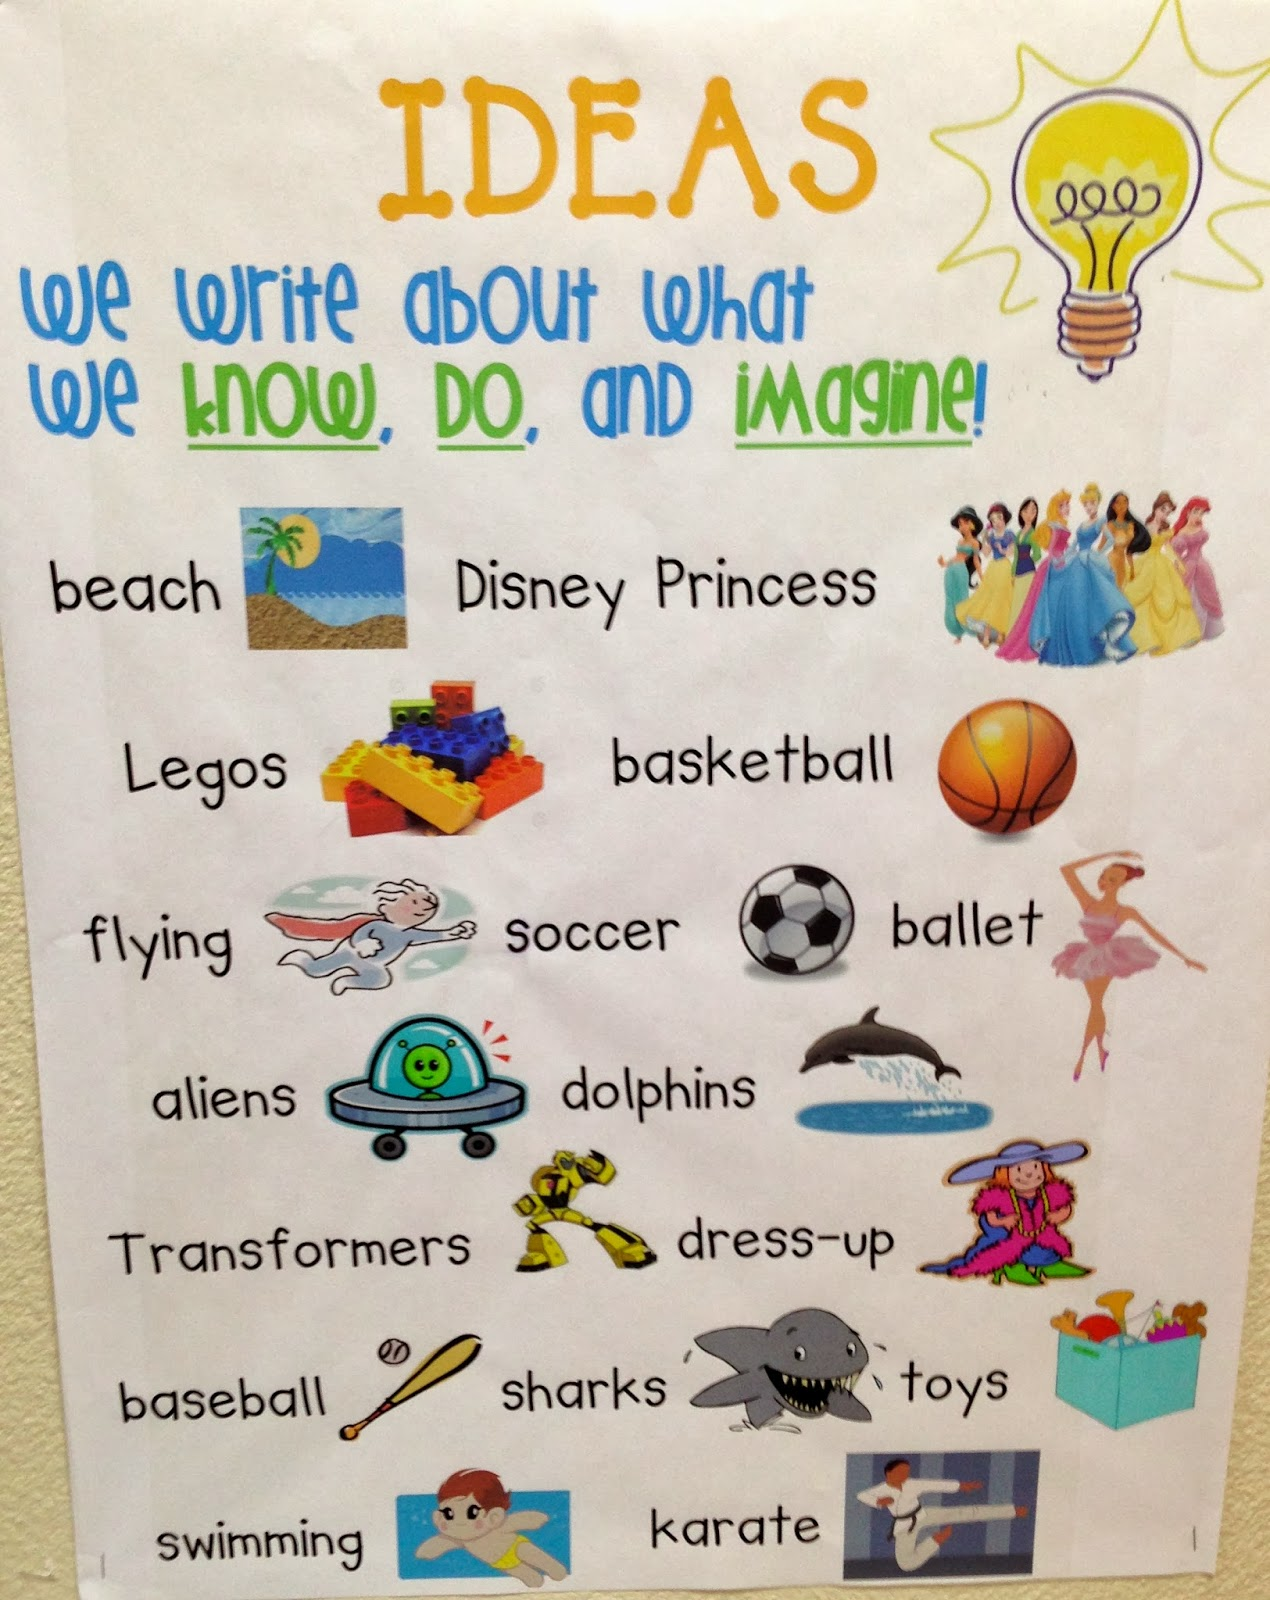 Character Traits: What's your character?